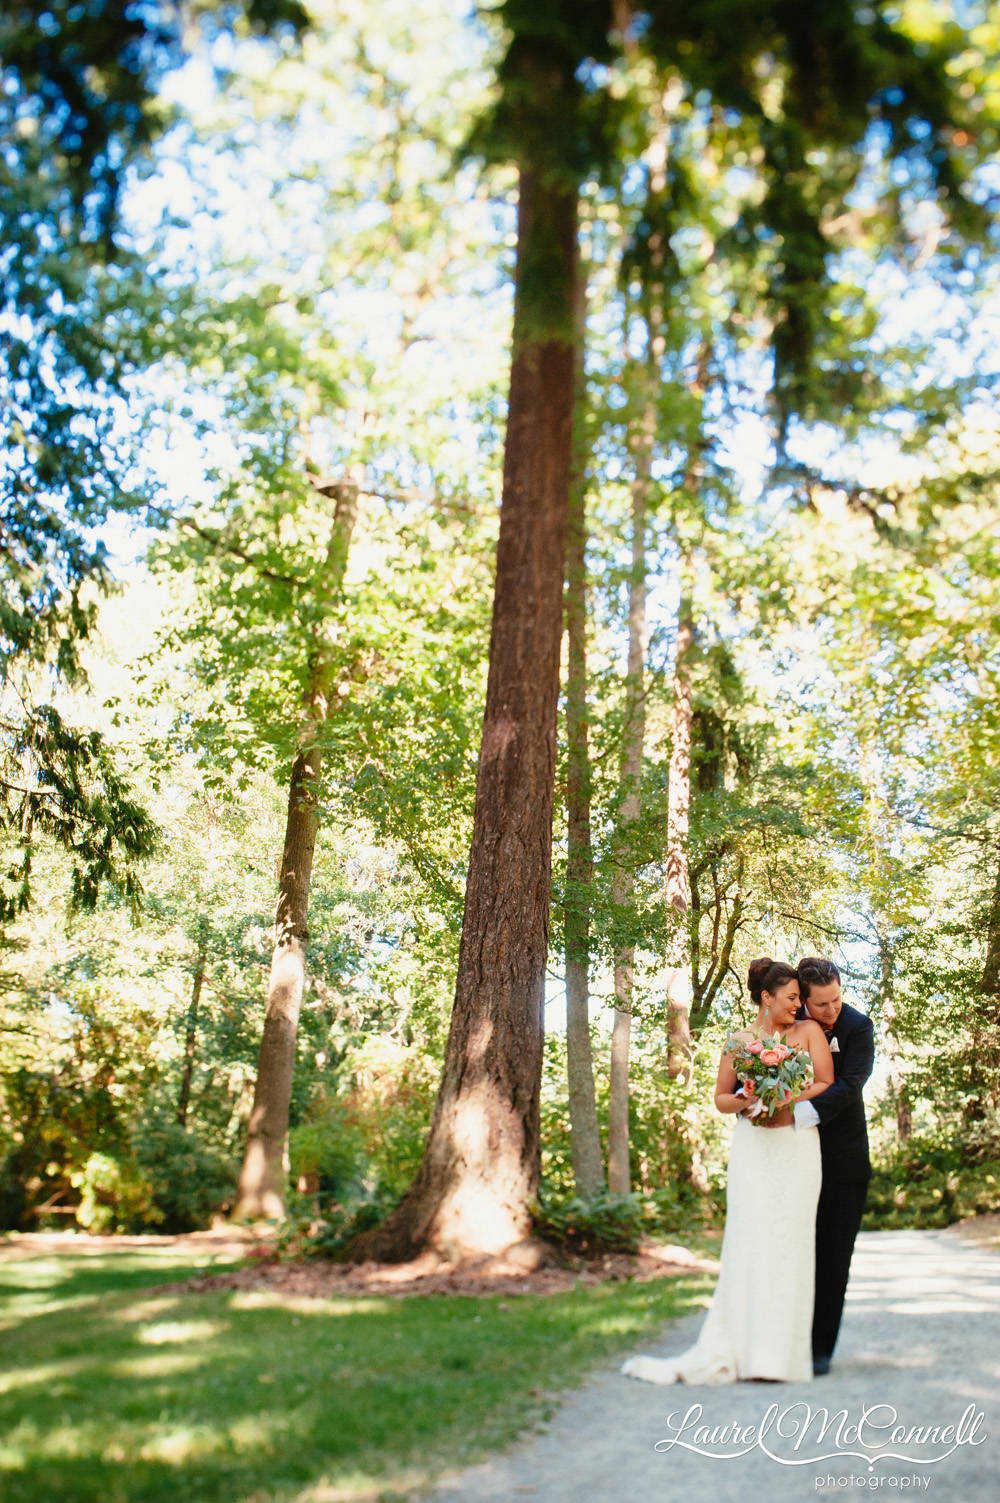 Romantic, woodland Seattle wedding portraits photography Laurel McConnell Photography.